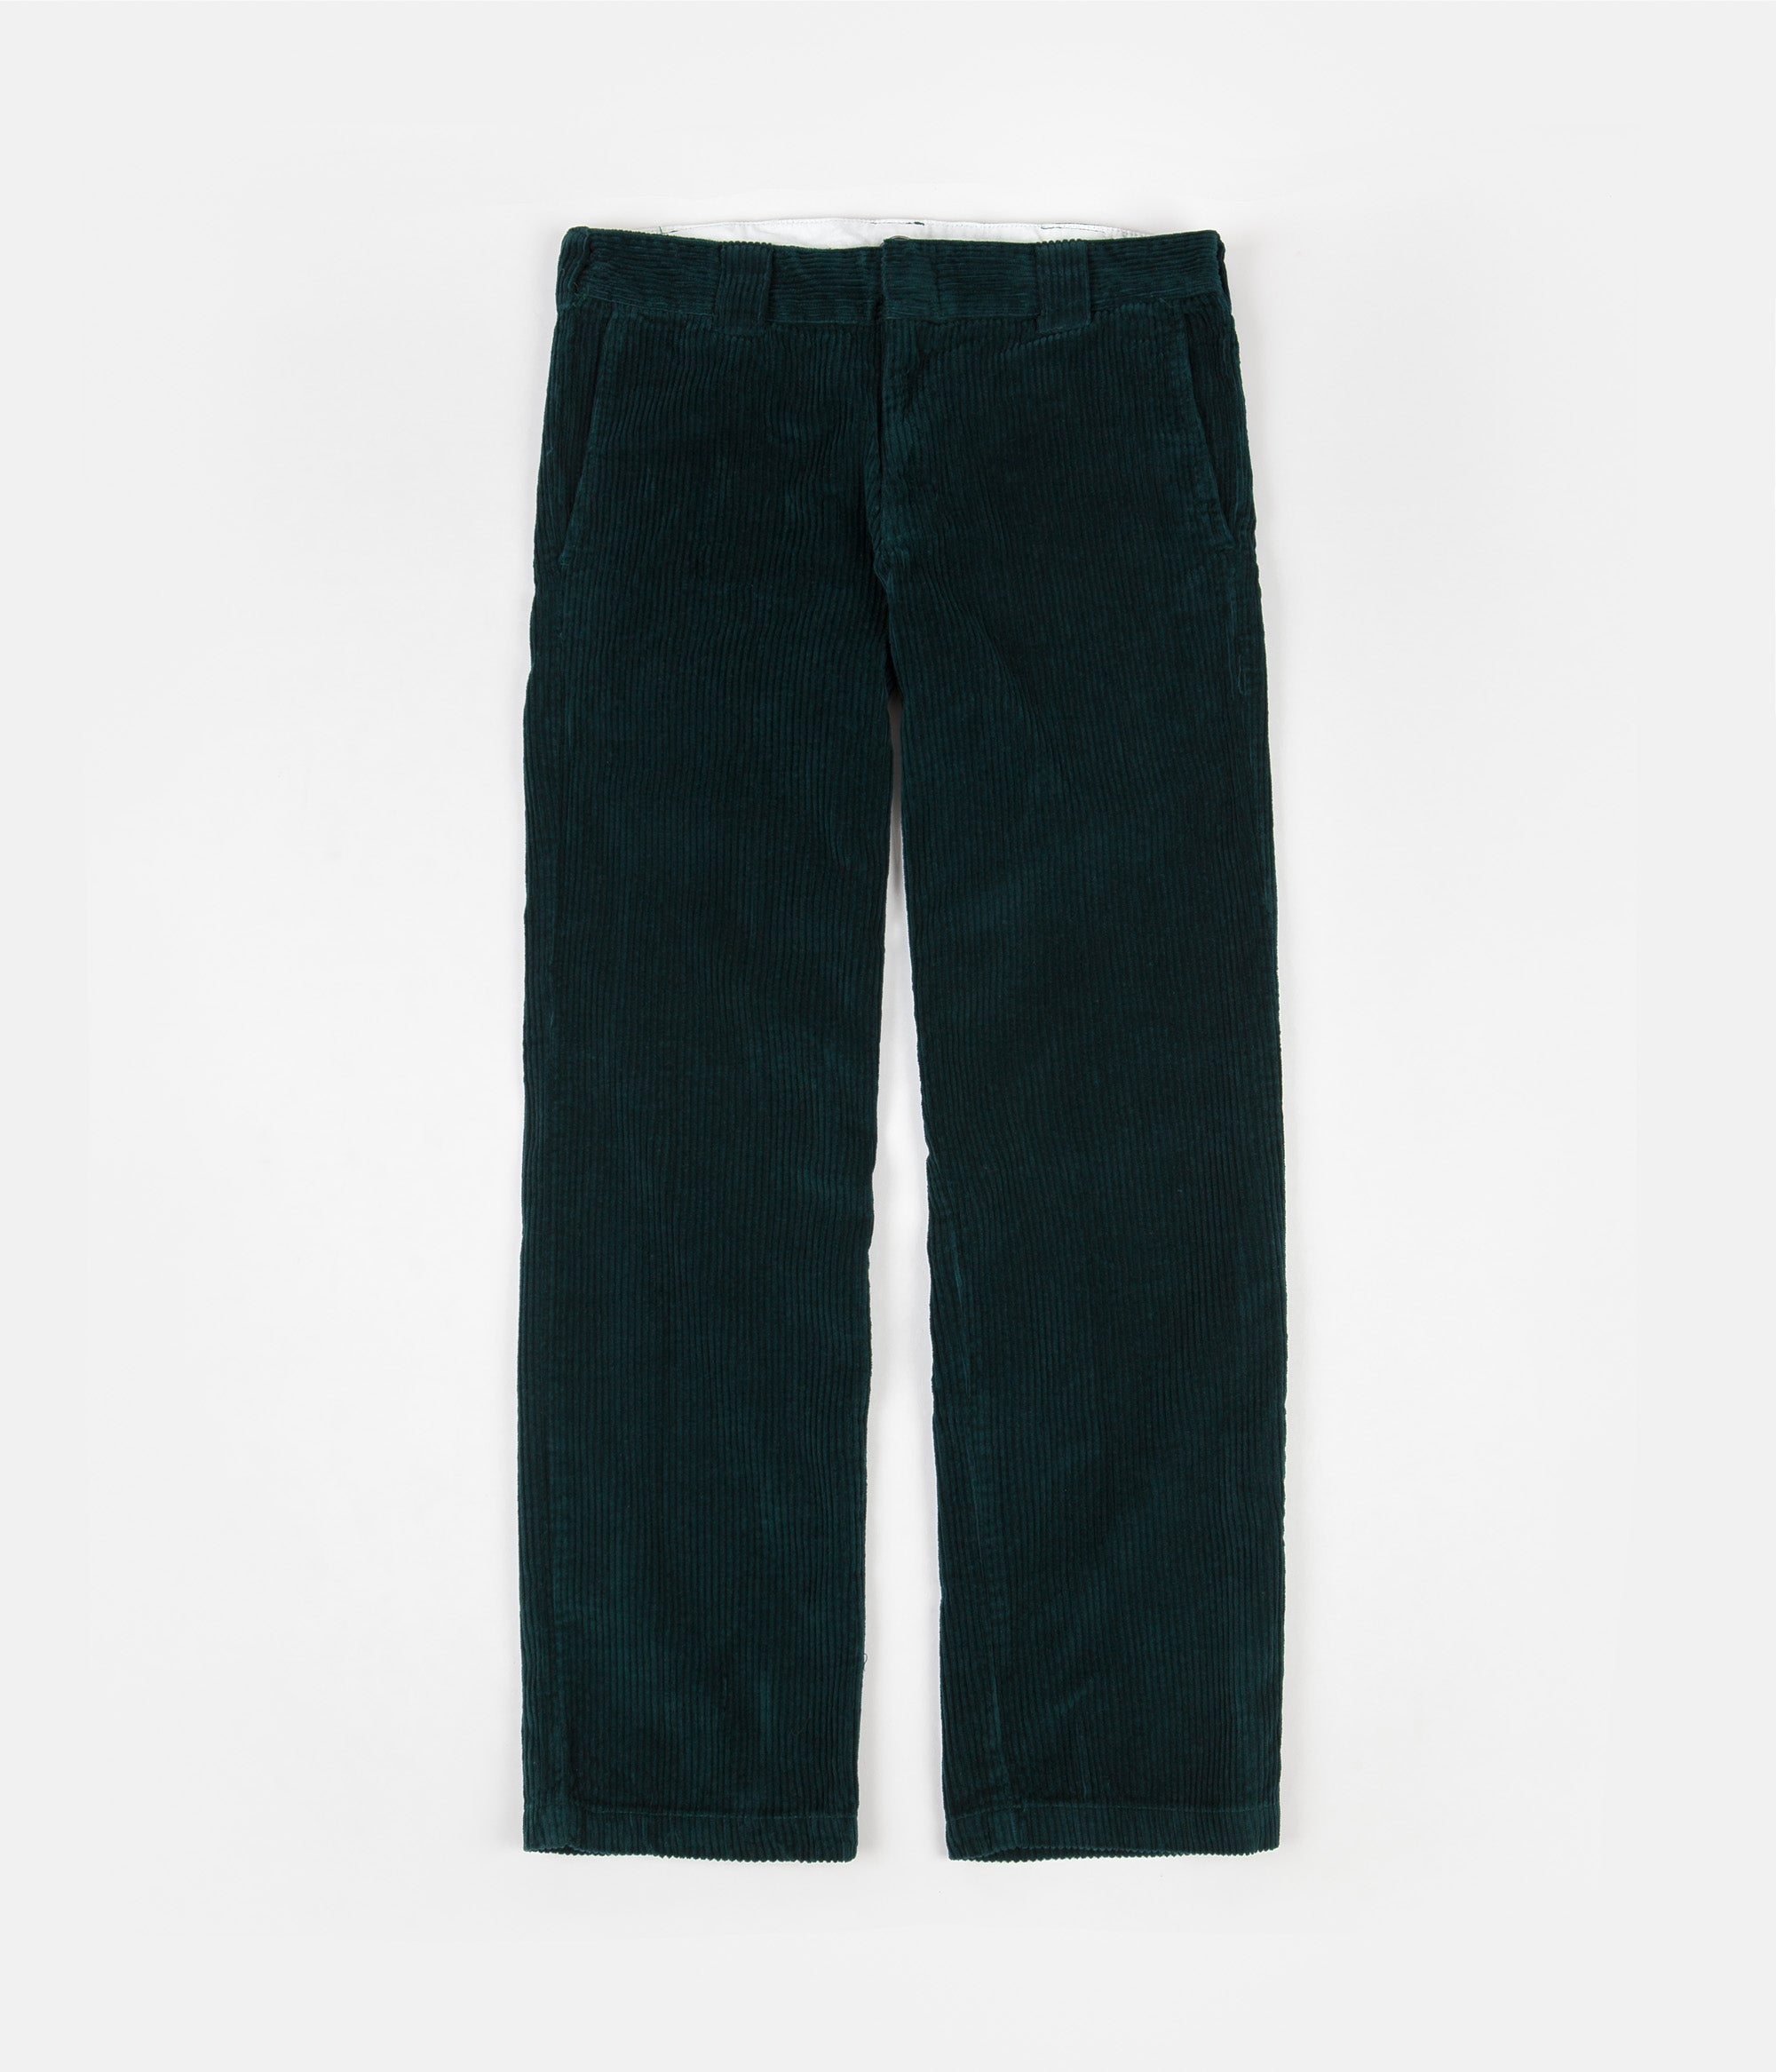 Dickies Cloverport Cord Work Trousers - Forest